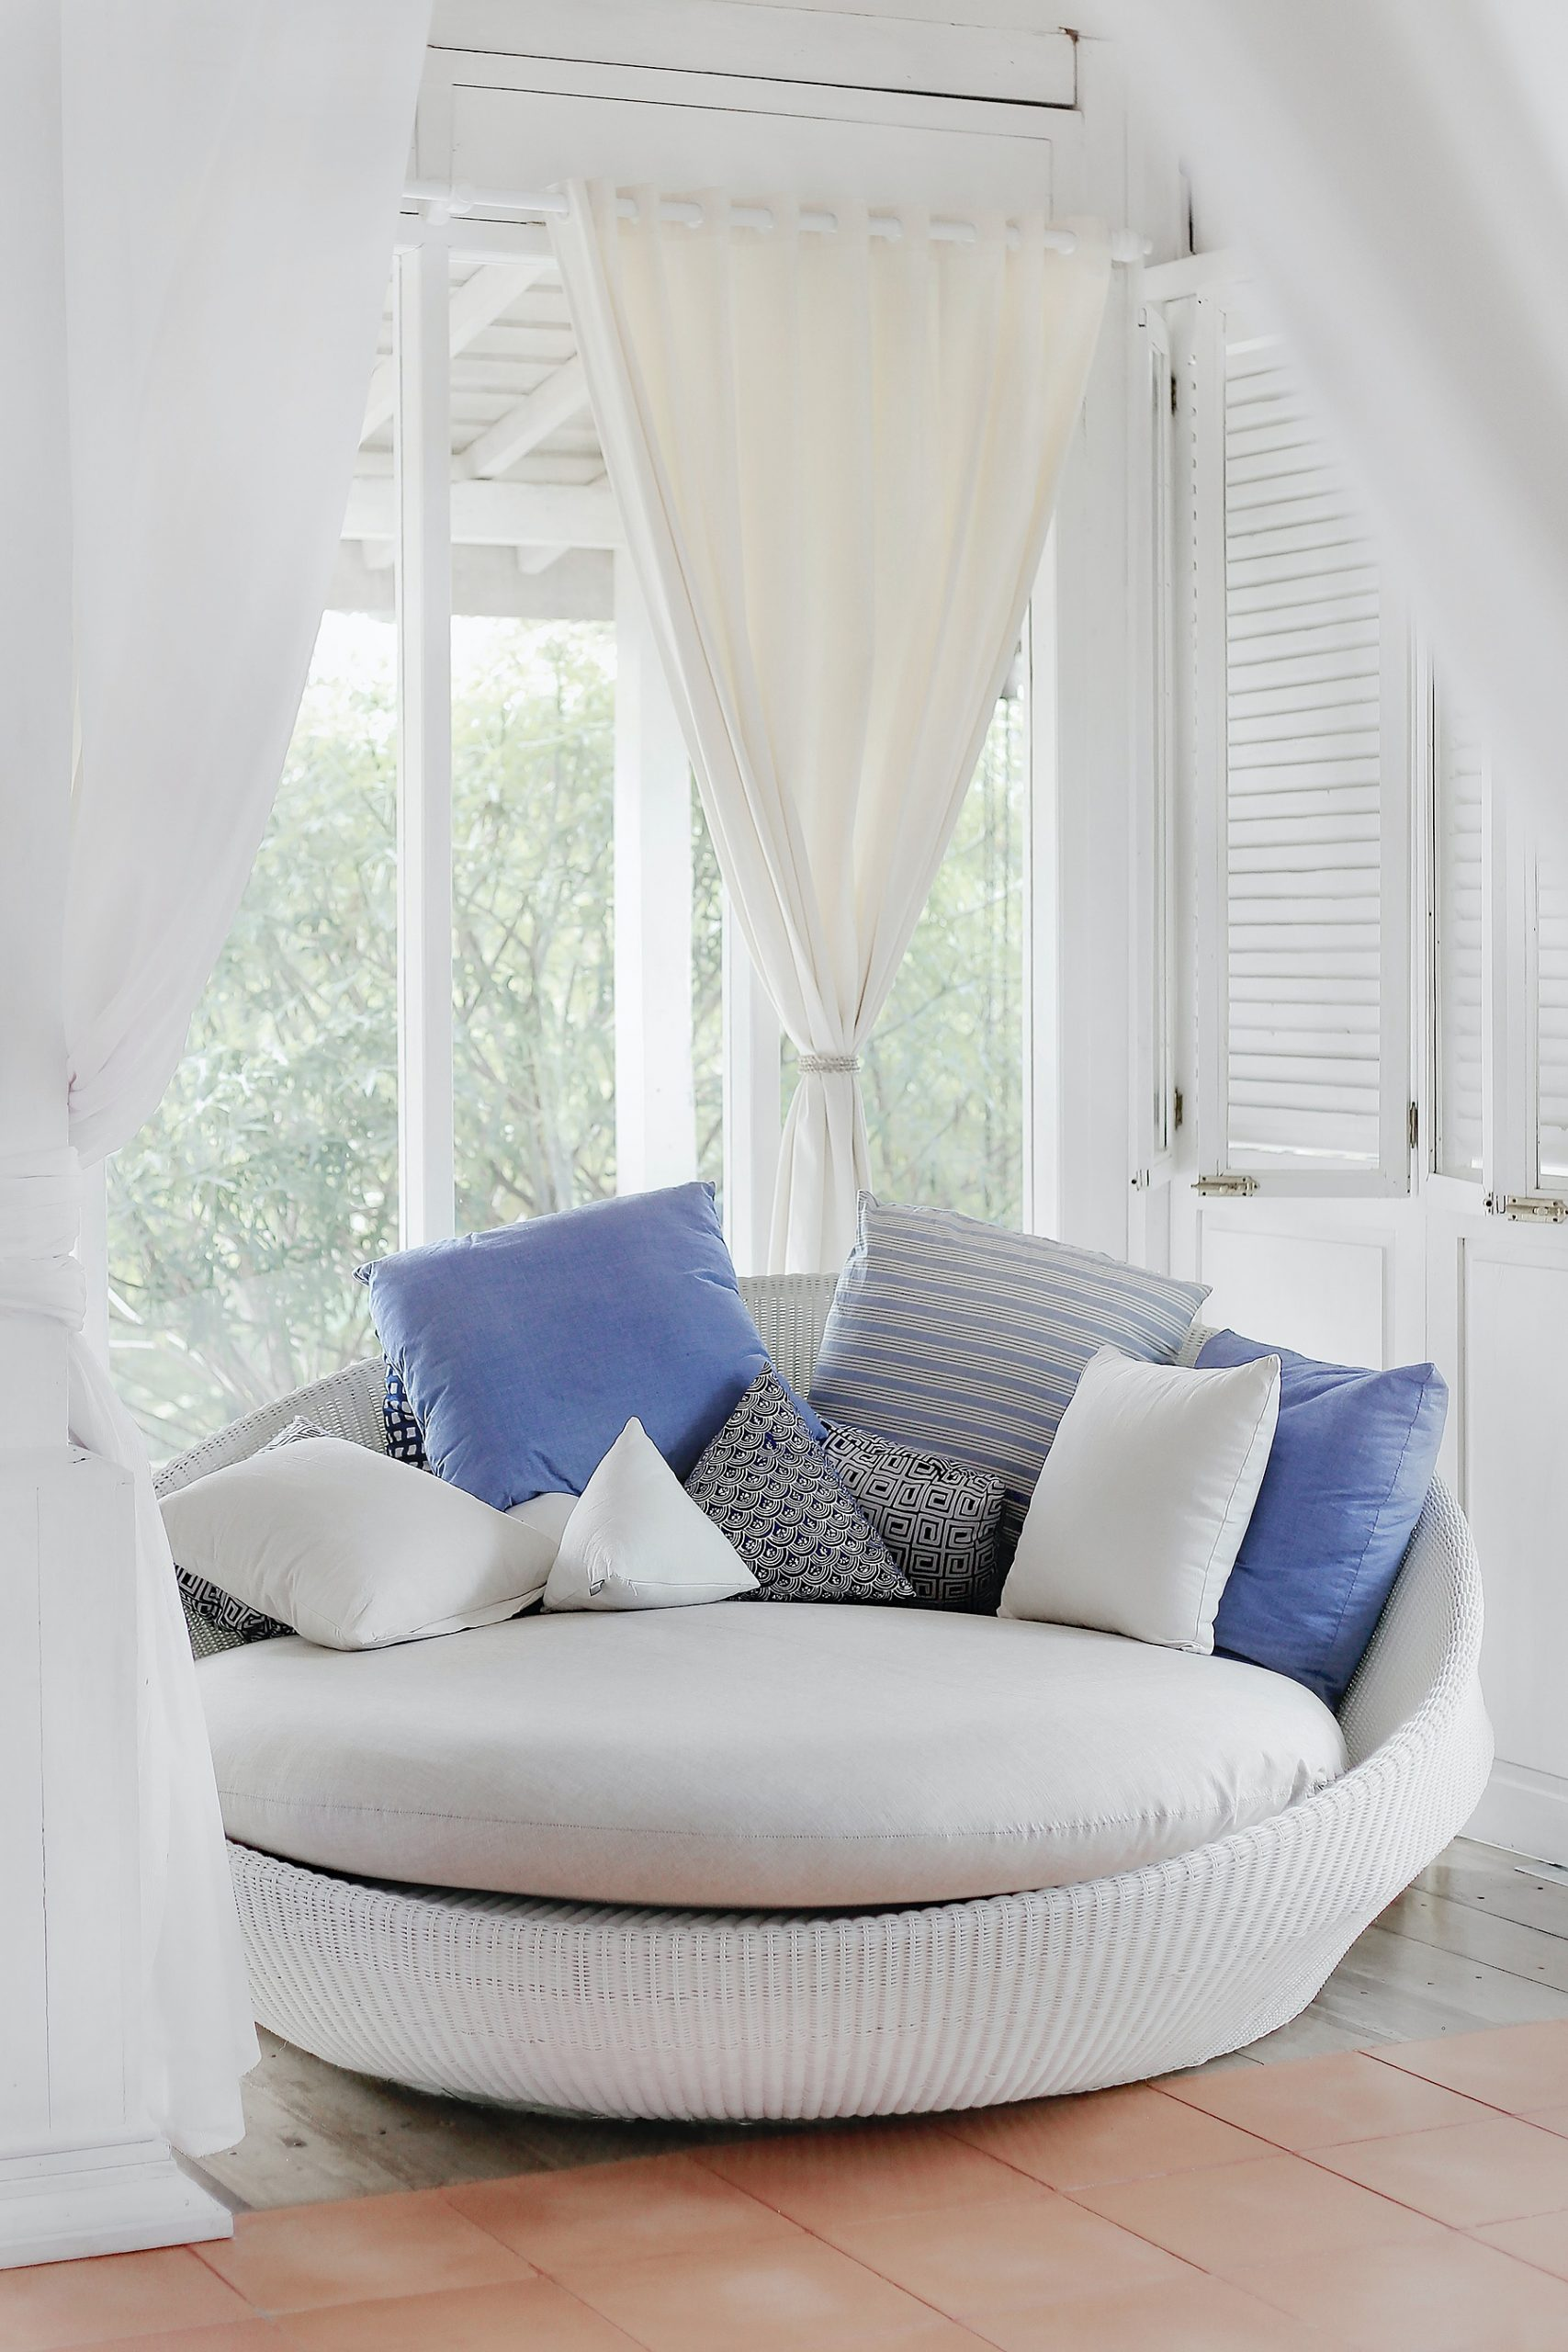 airy and calming nook of the home, with white curtains and comfy, round white seating accented with blue and patterned throw pillows